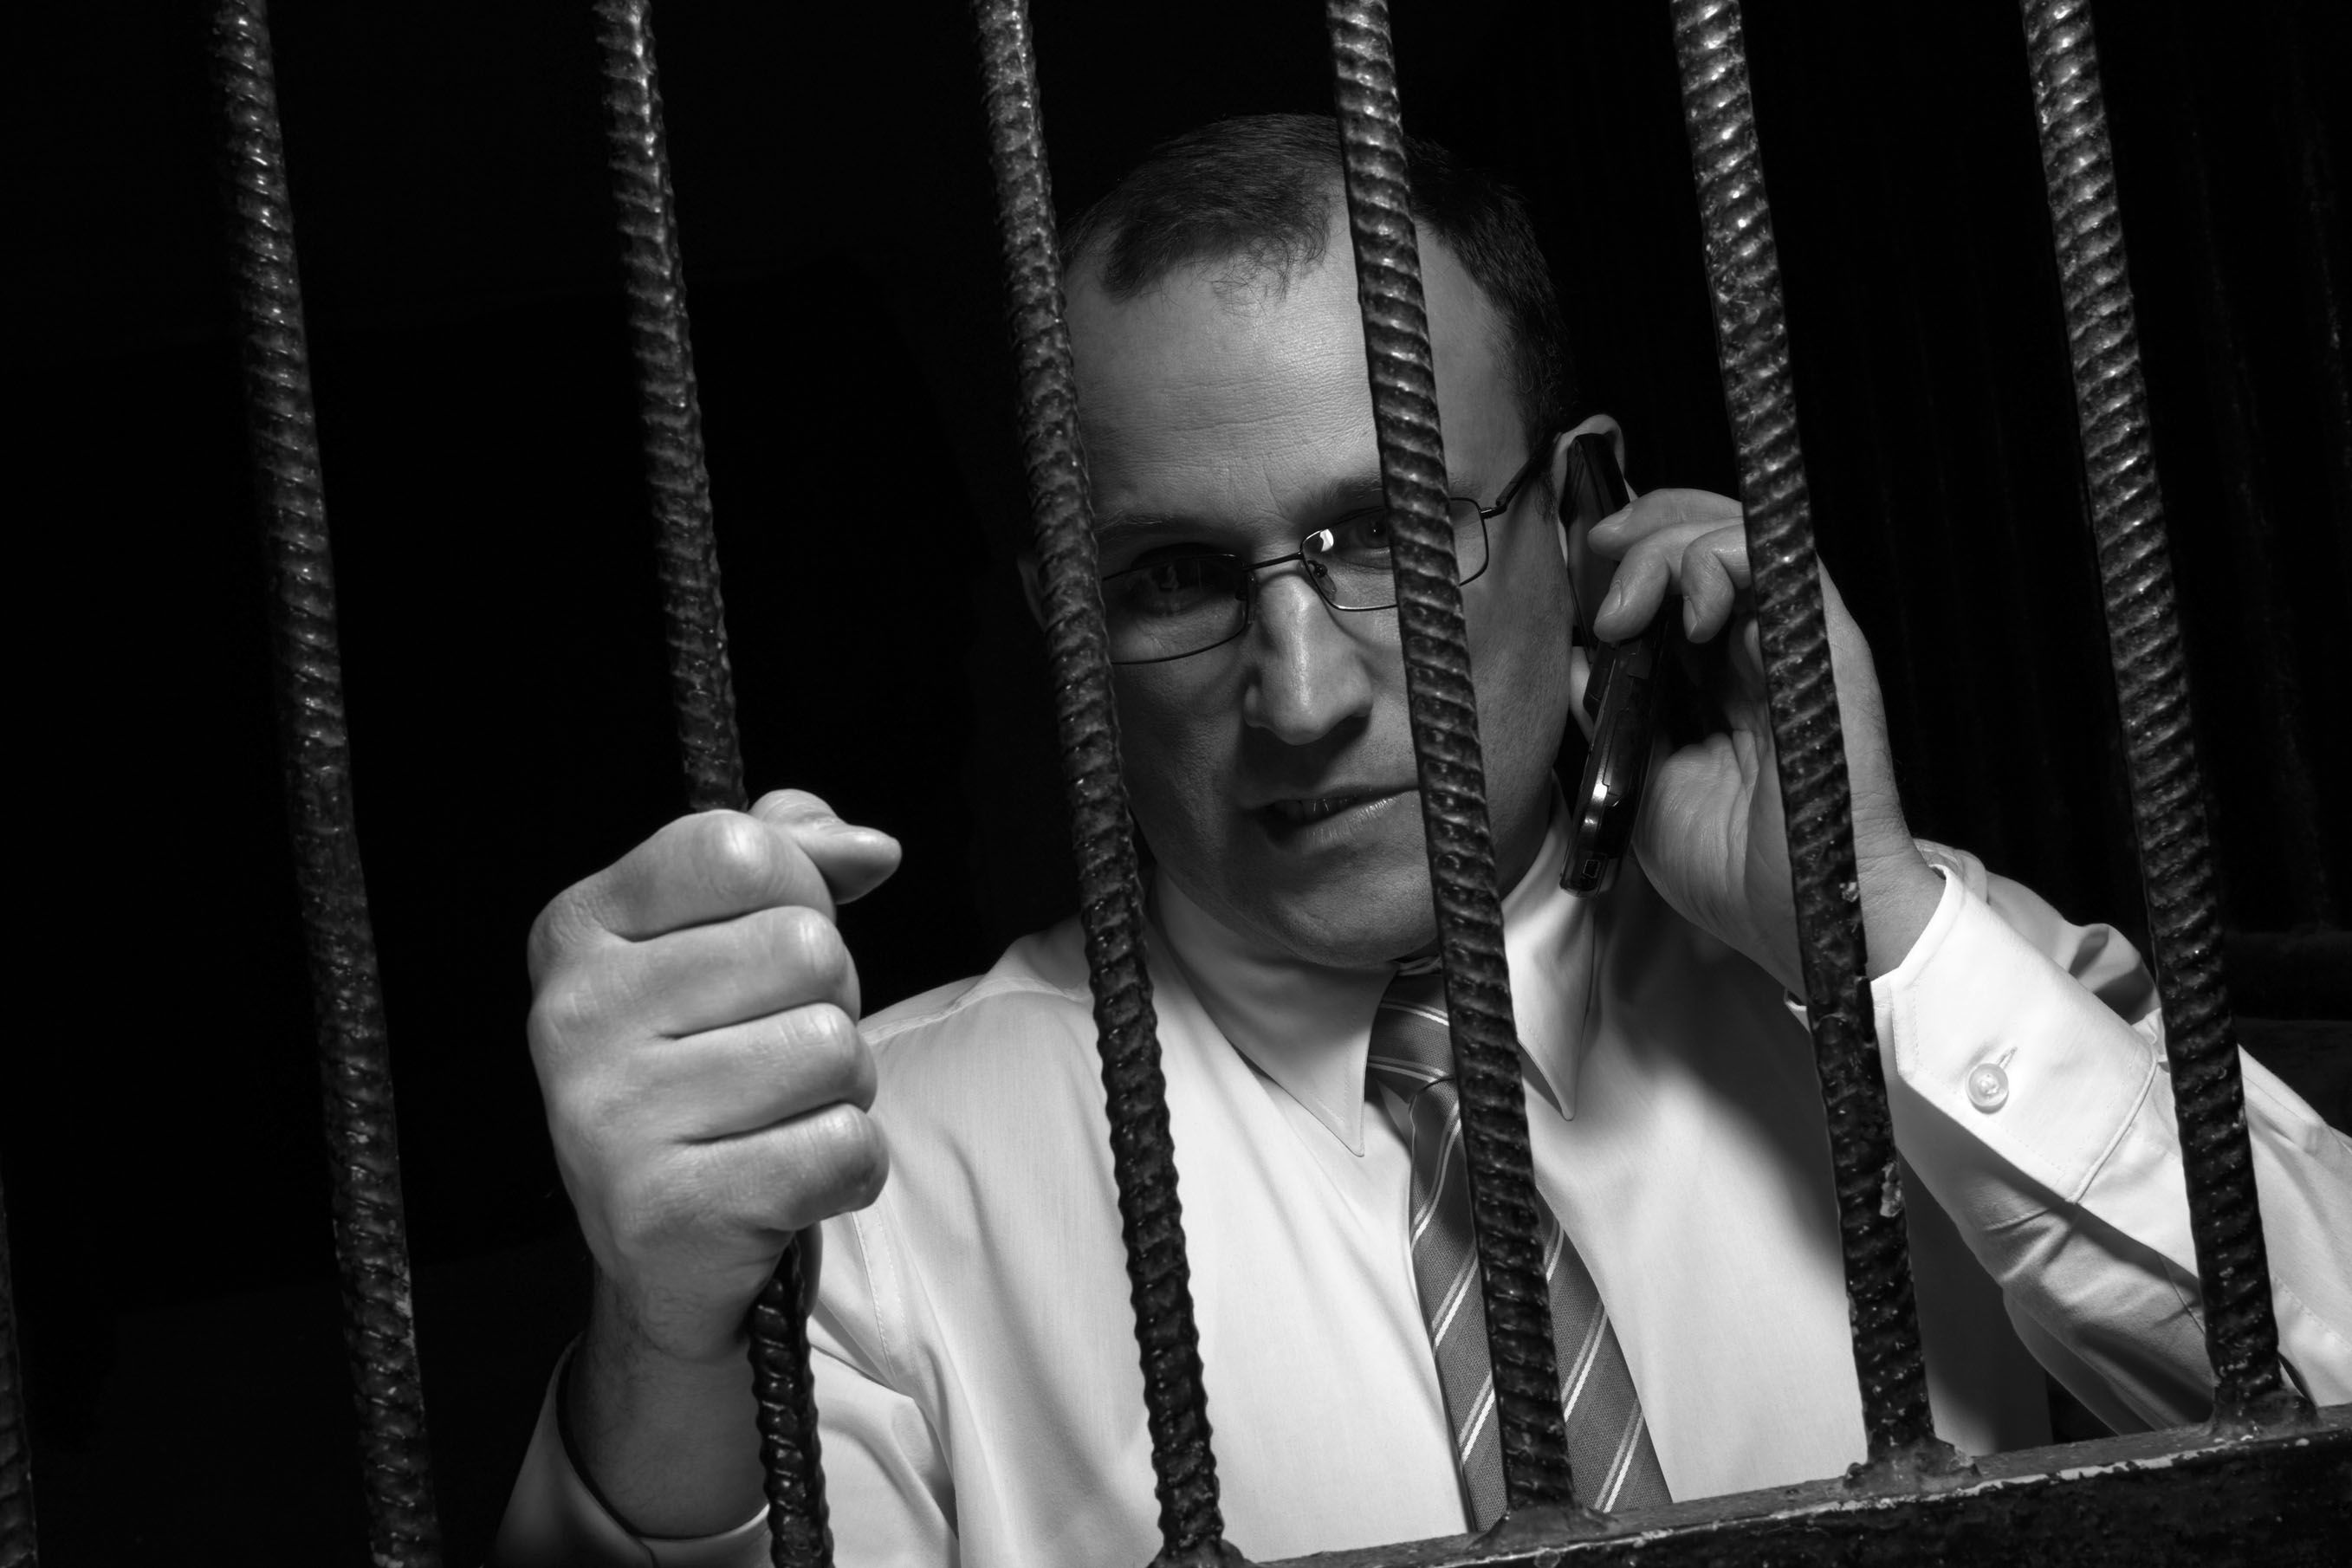 Calling a lawyer while behind bars